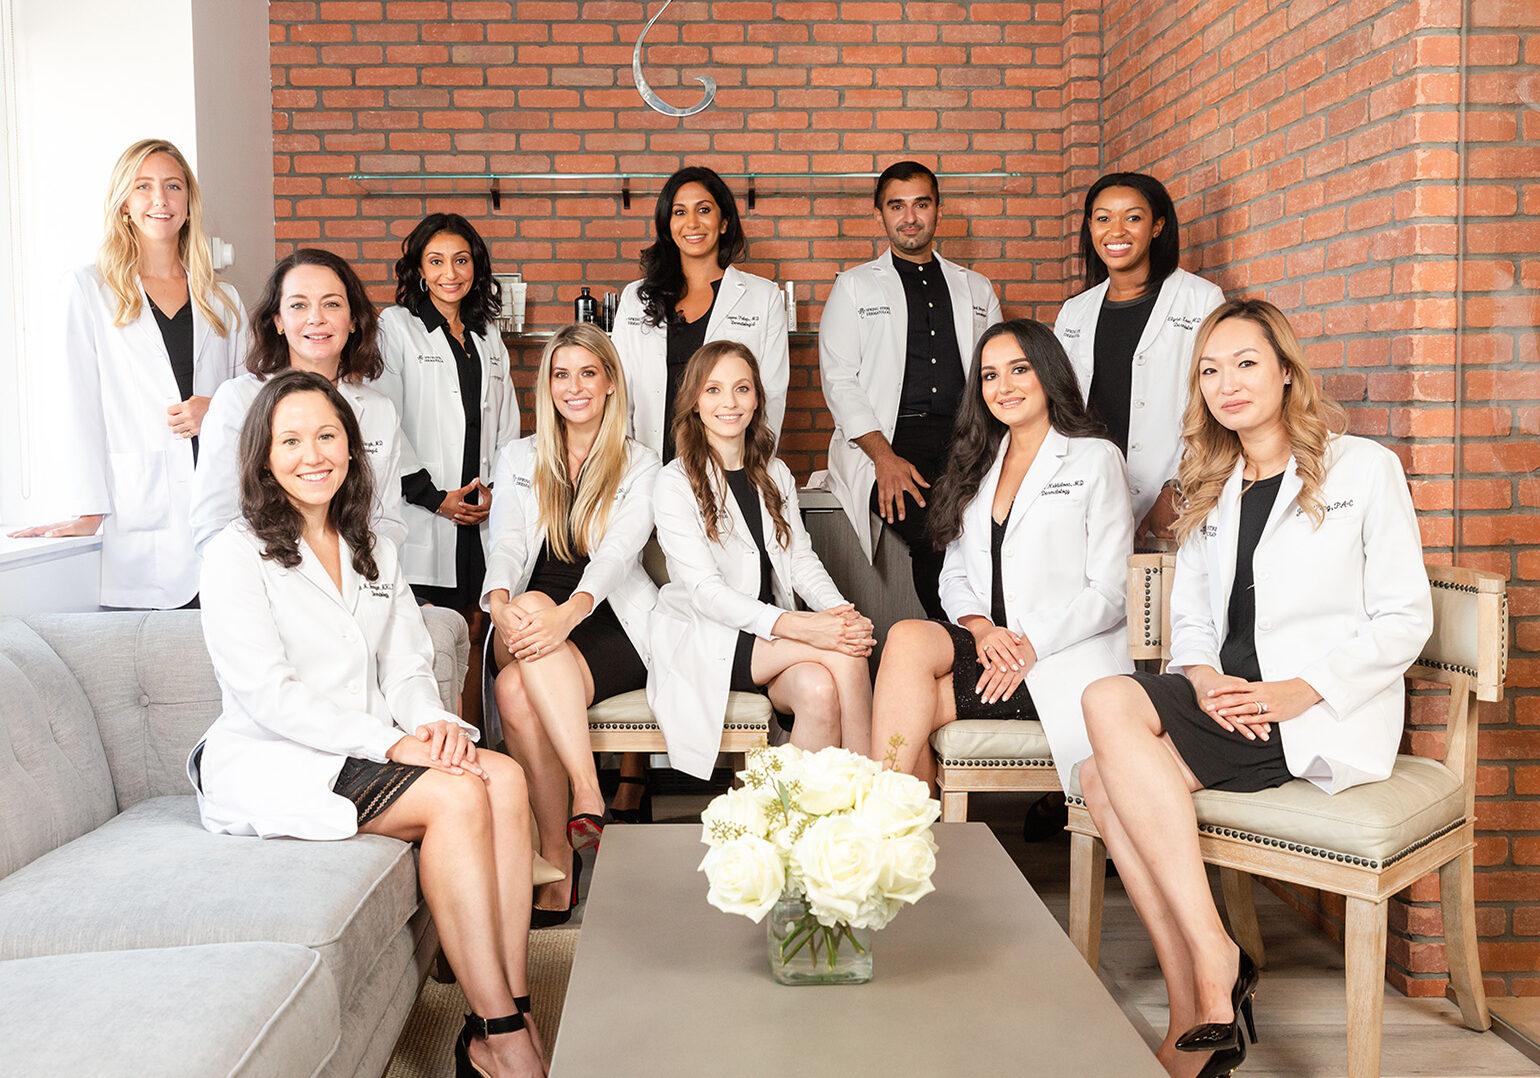 Group photo of Board Certified Dermatologists at Spring Field Dermatology in New York City, NY